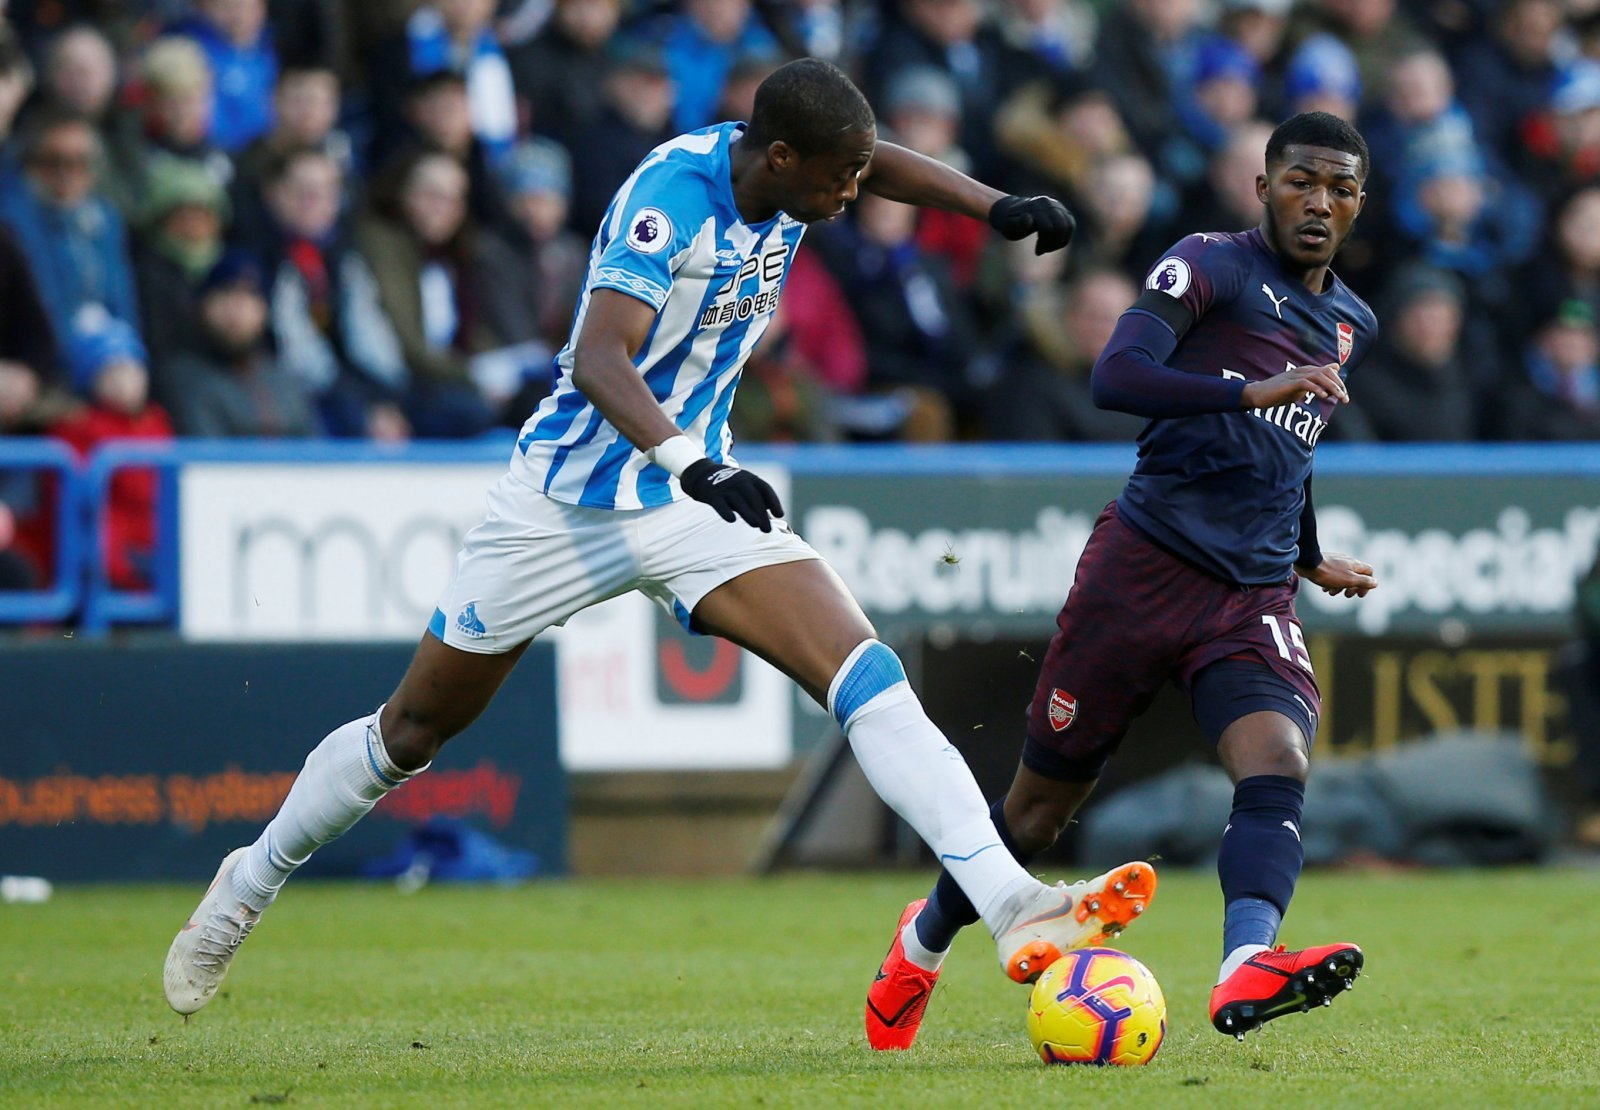 Terence Kongolo could be a brilliant option for Palace if Huddersfield go down